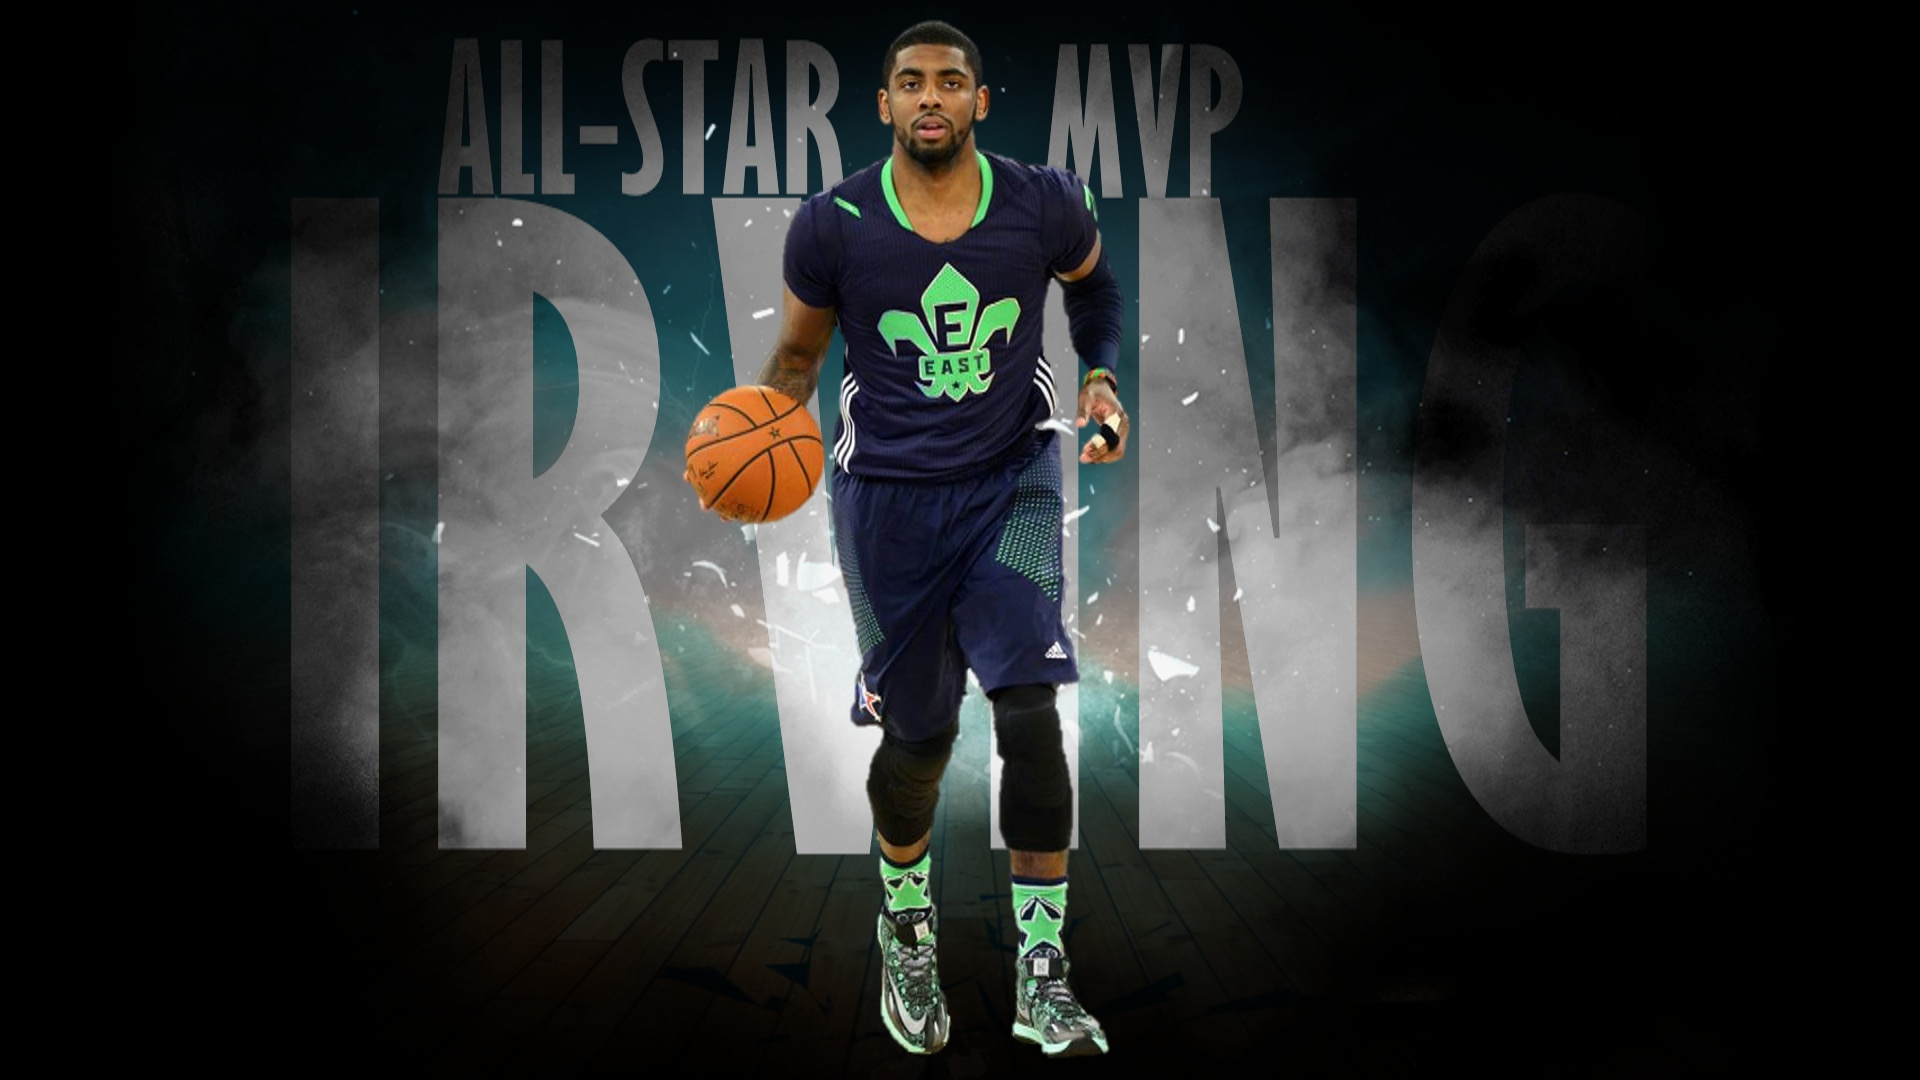 76f9642494a IRVING ALLSTAR COVERART. Kyrie Irving played magnificent in the East s  163-155 win over the West in the 2014 NBA All Star Game. Irving was named  MVP ...